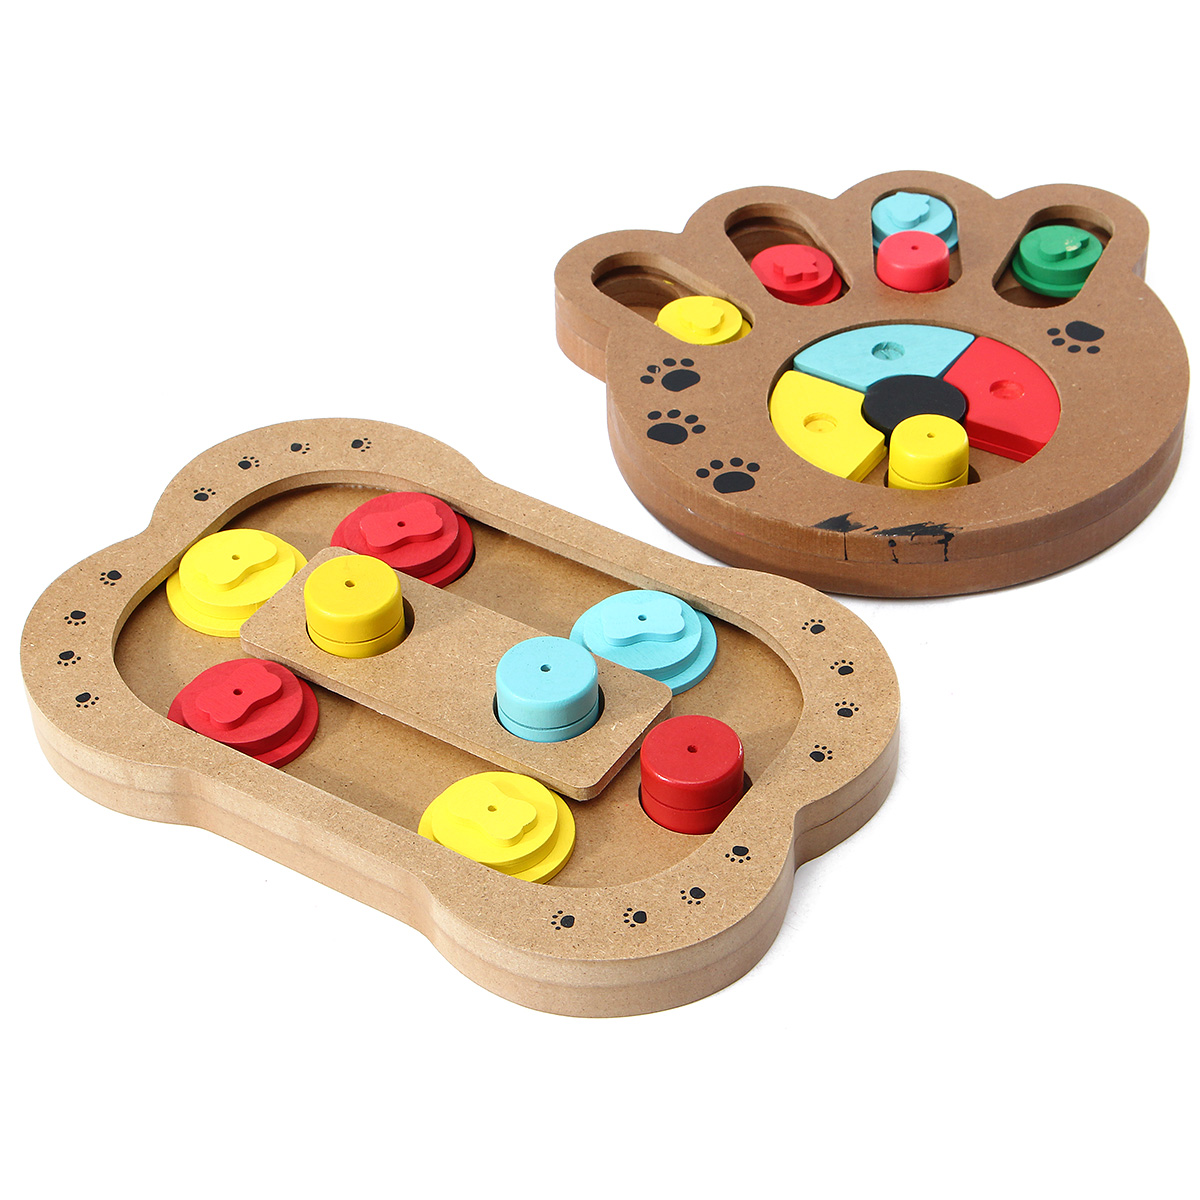 Dog Cat Pet Game IQ Training Toy Interactive Wooden Food Dispensing Puzzle Plate